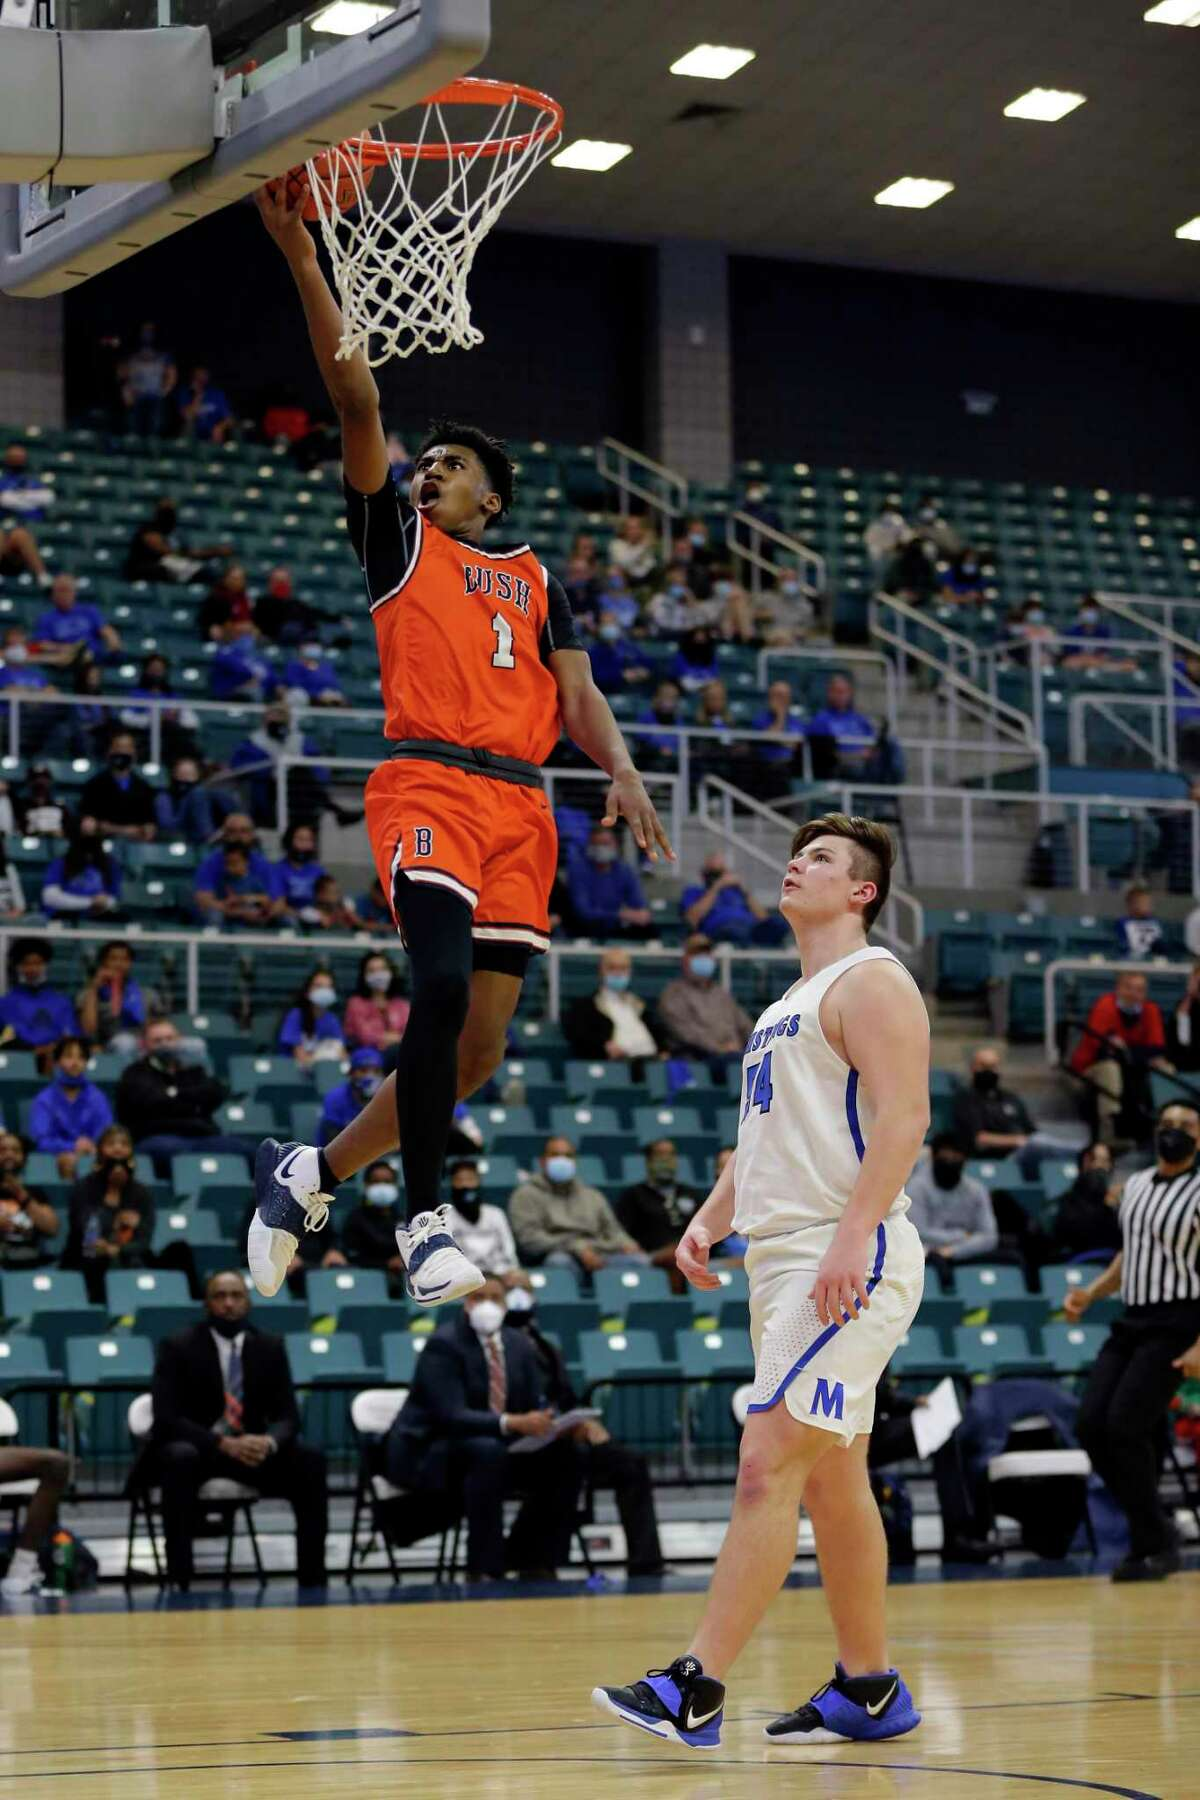 Bush's Zion Bourgeois (1) lays up a shot past Katy Taylor's Nolan Hay (54) during the second half of a 6A district boys high school basketball playoff game Saturday, Feb. 20, 2021 at the Merrell Center in Katy, TX.